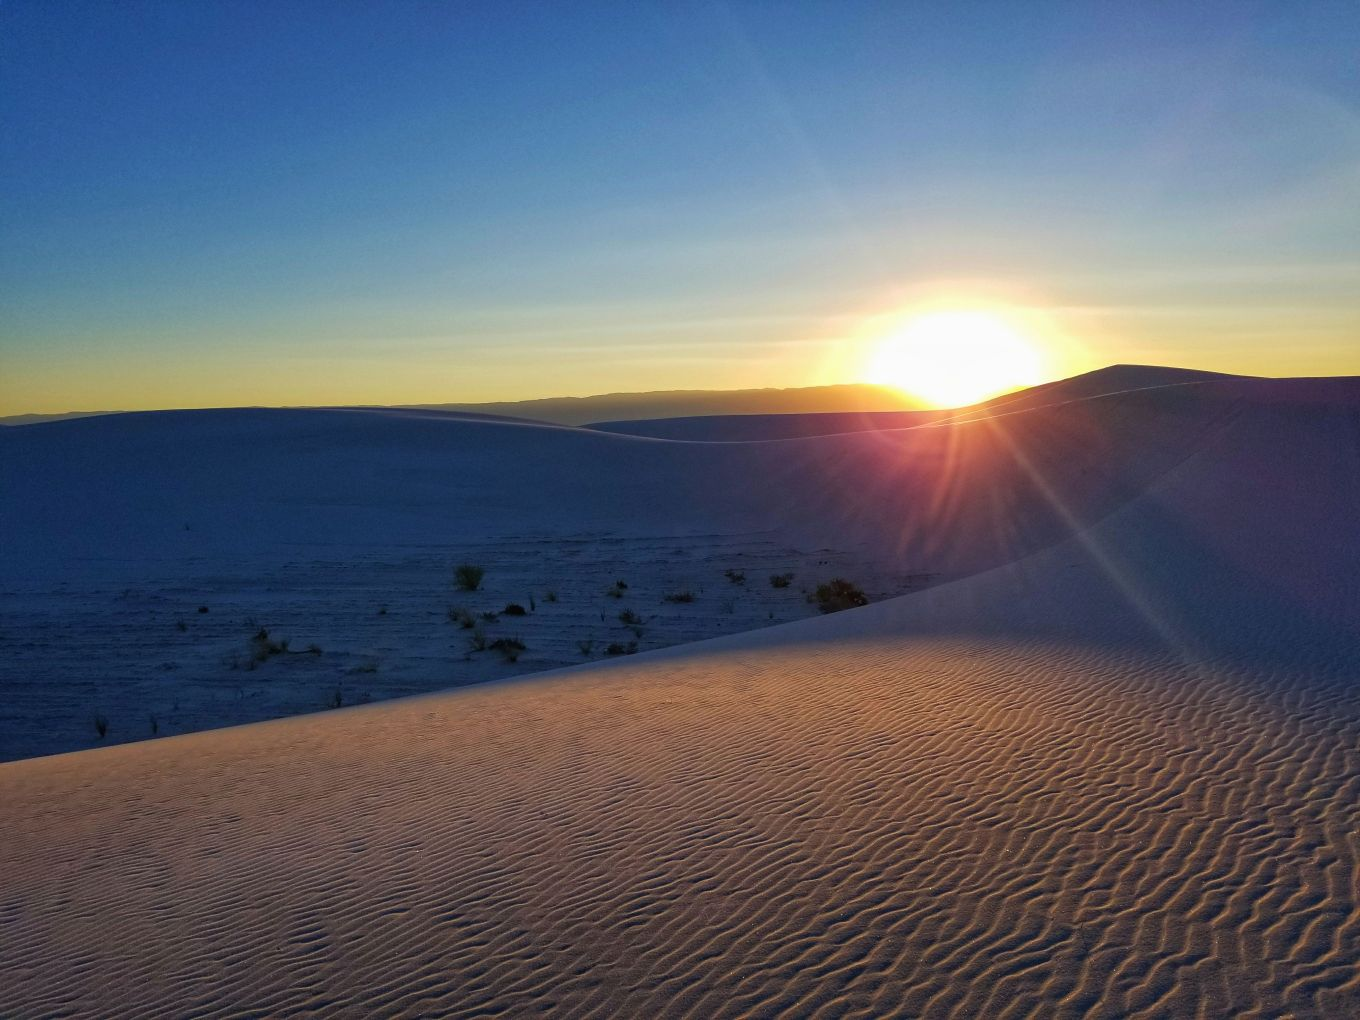 Sunrise at White Sands National Monument